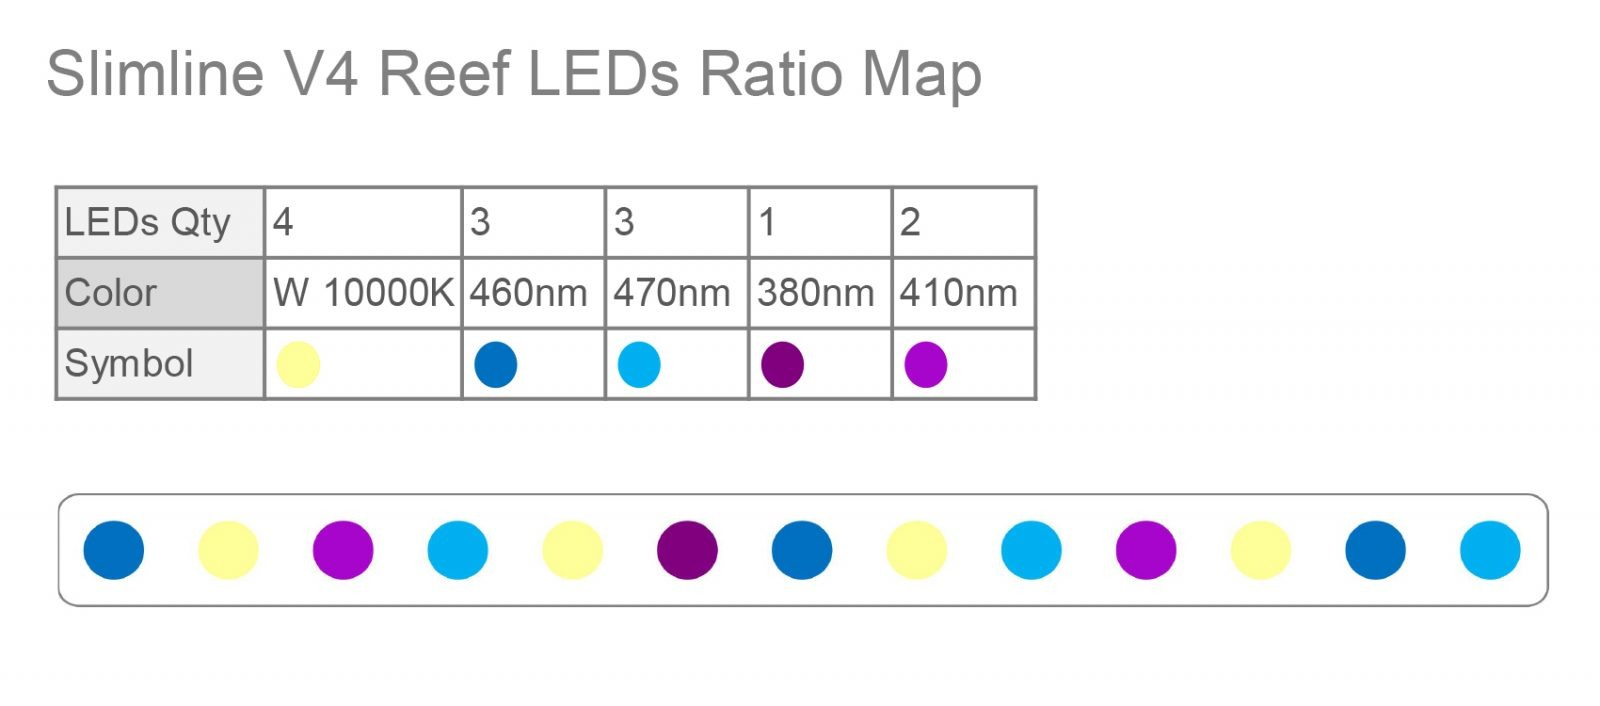 Slimline V4 LED-reef ratio kaart 20170620 update (1)